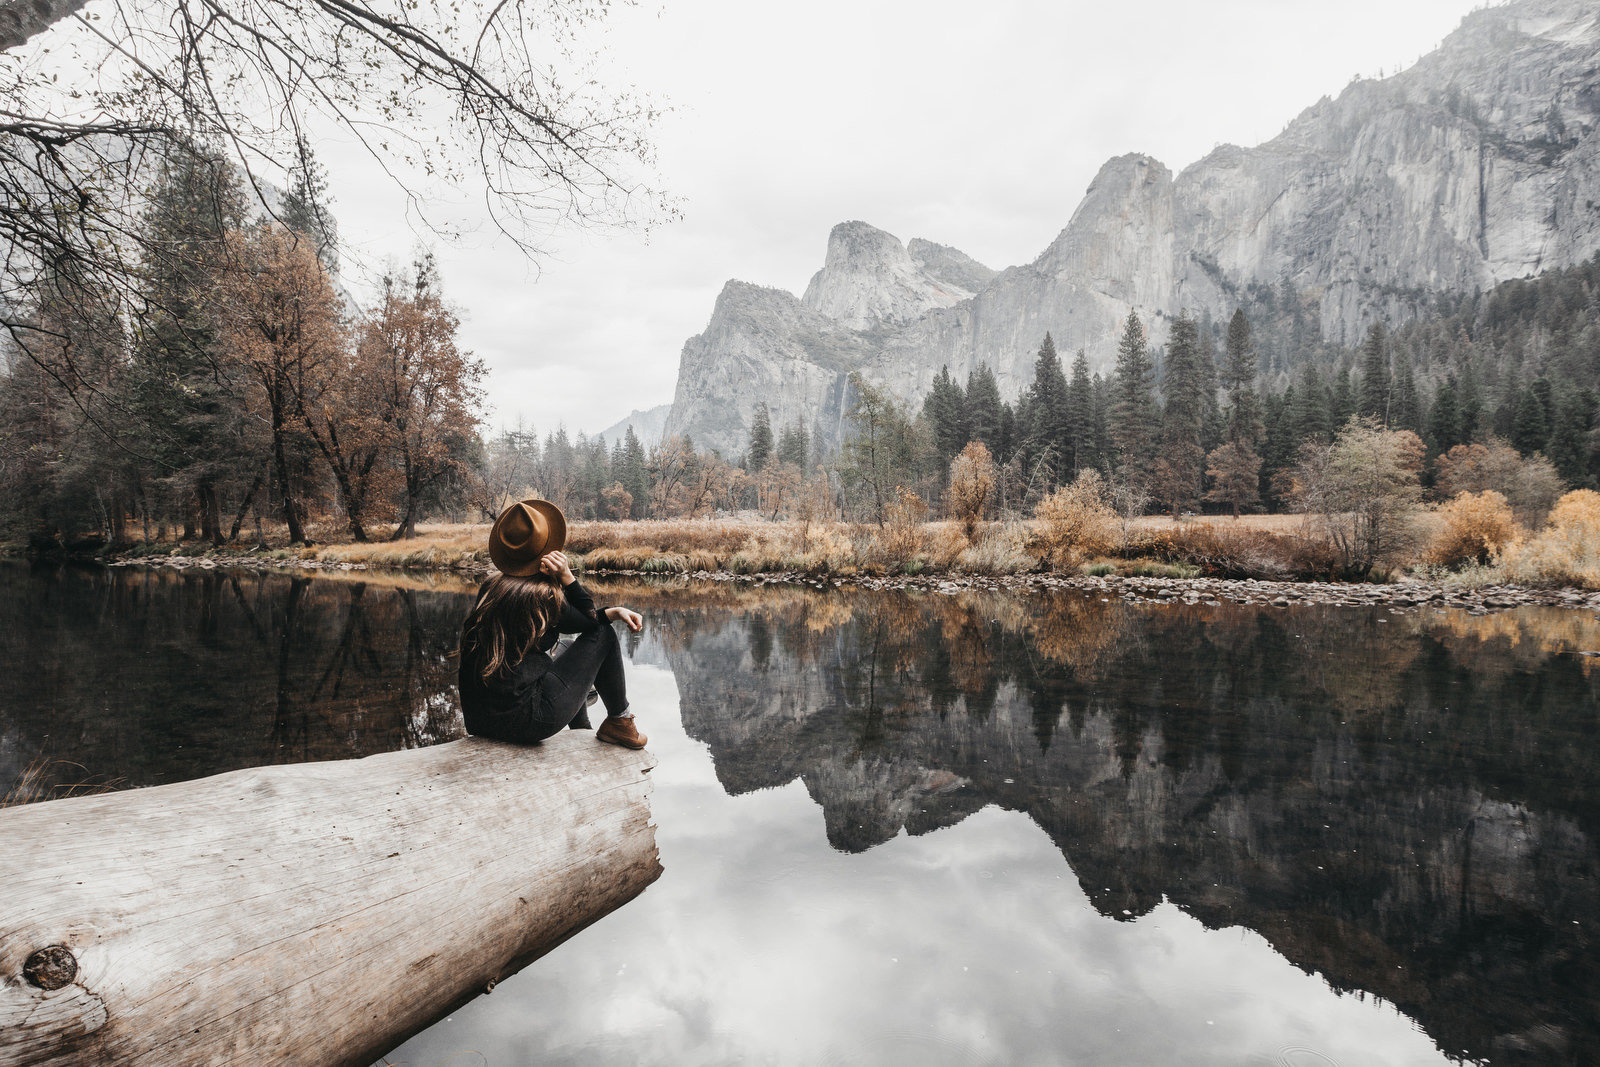 athena-and-camron-yosemite-national-park-christian-couple-travel-bloggers-couple-goals19-epic-landscape-yosemite-valley-girl-wearing-hat-yellow108